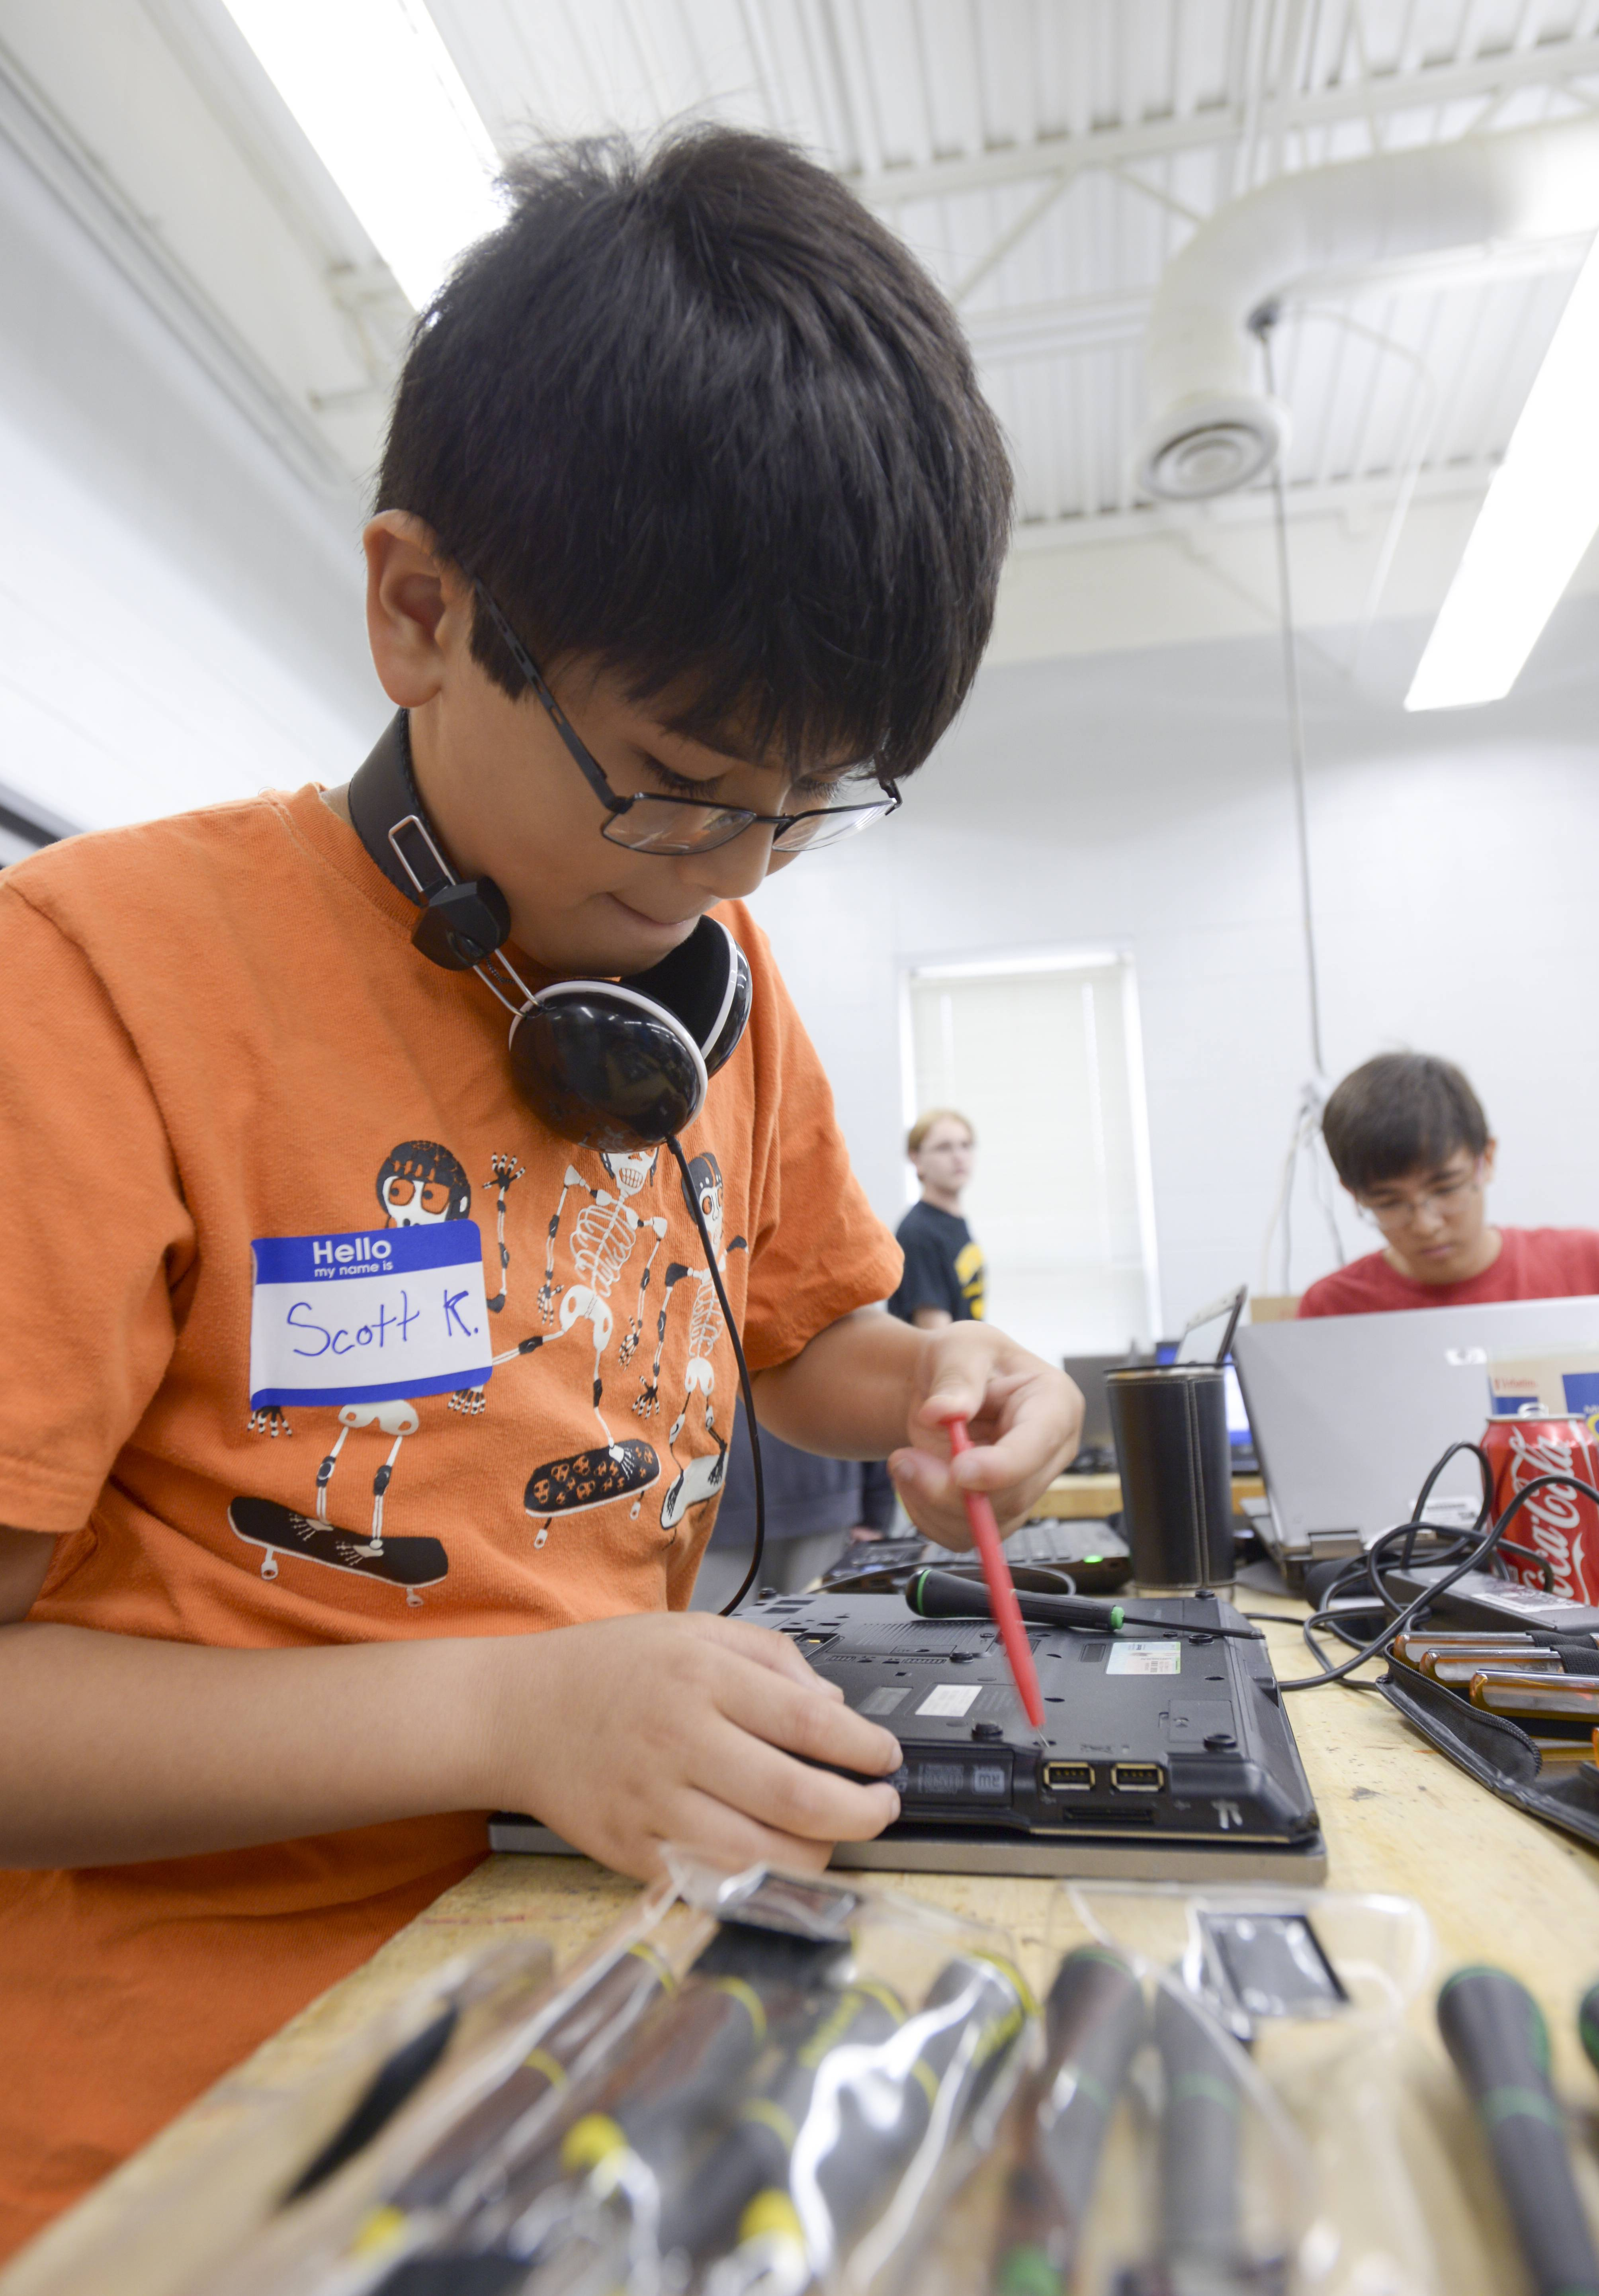 Scott Kwok, 10, of Naperville repairs an old Indian Prairie Unit District 204 laptop the district no longer is using so it can be given to a student in need as part of the Computer Redeployment Program. Volunteers have repaired more than 700 computers since 2008.